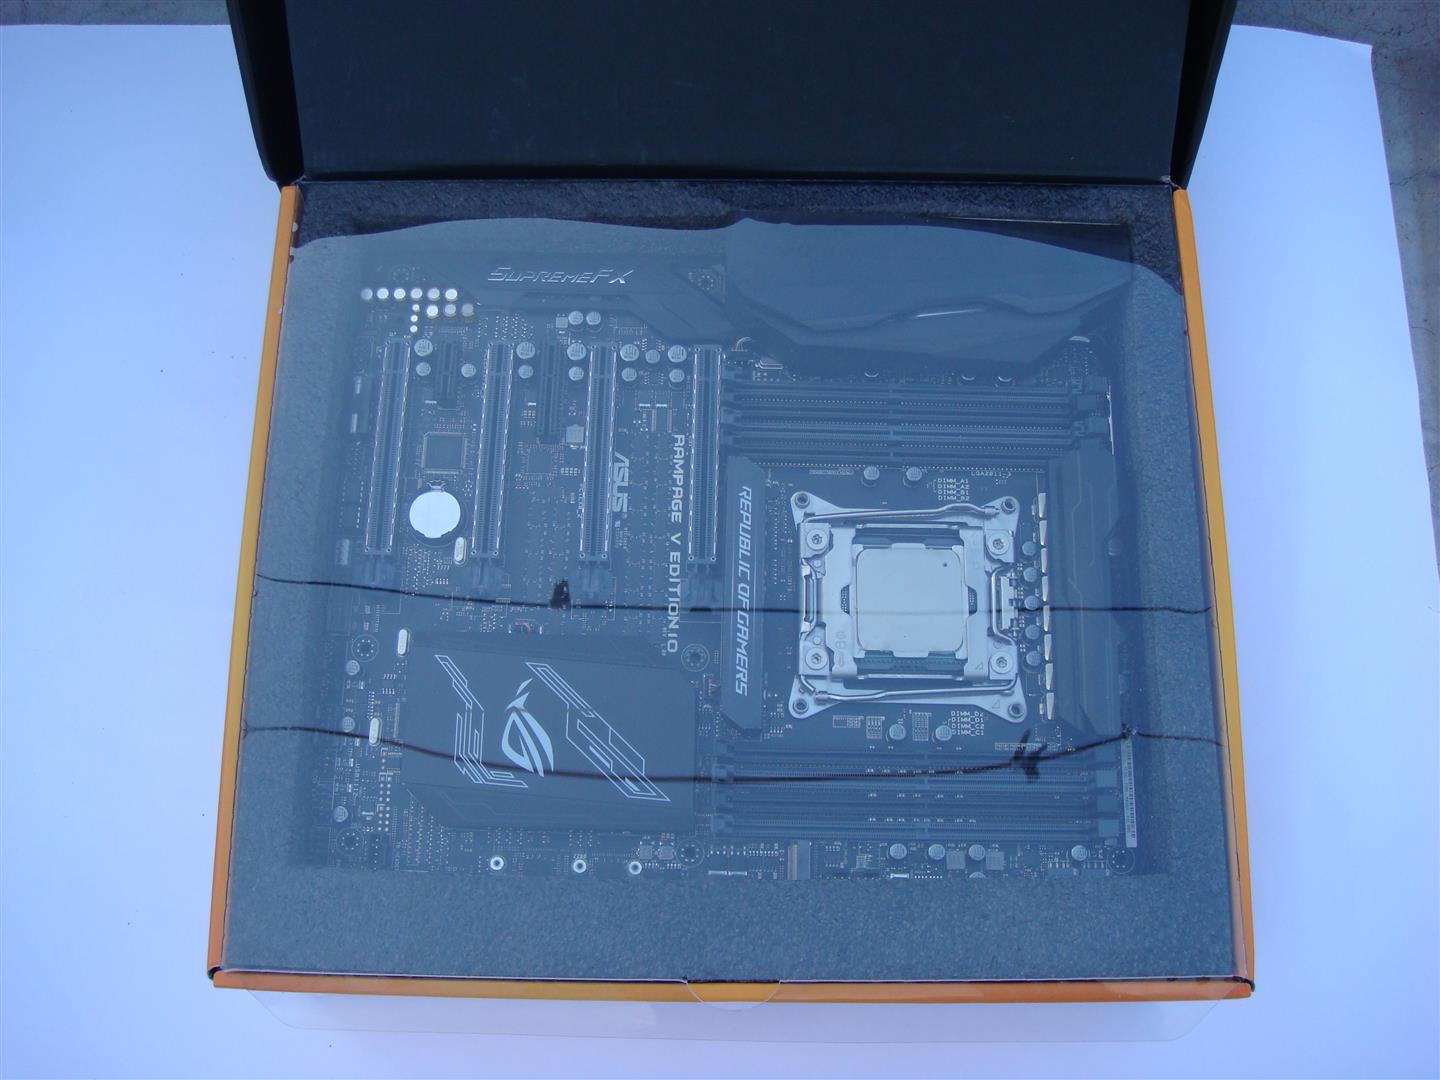 Asus Rampage V Edition 10 Motherboard Review Comes With Very Nice Set Of Accessories